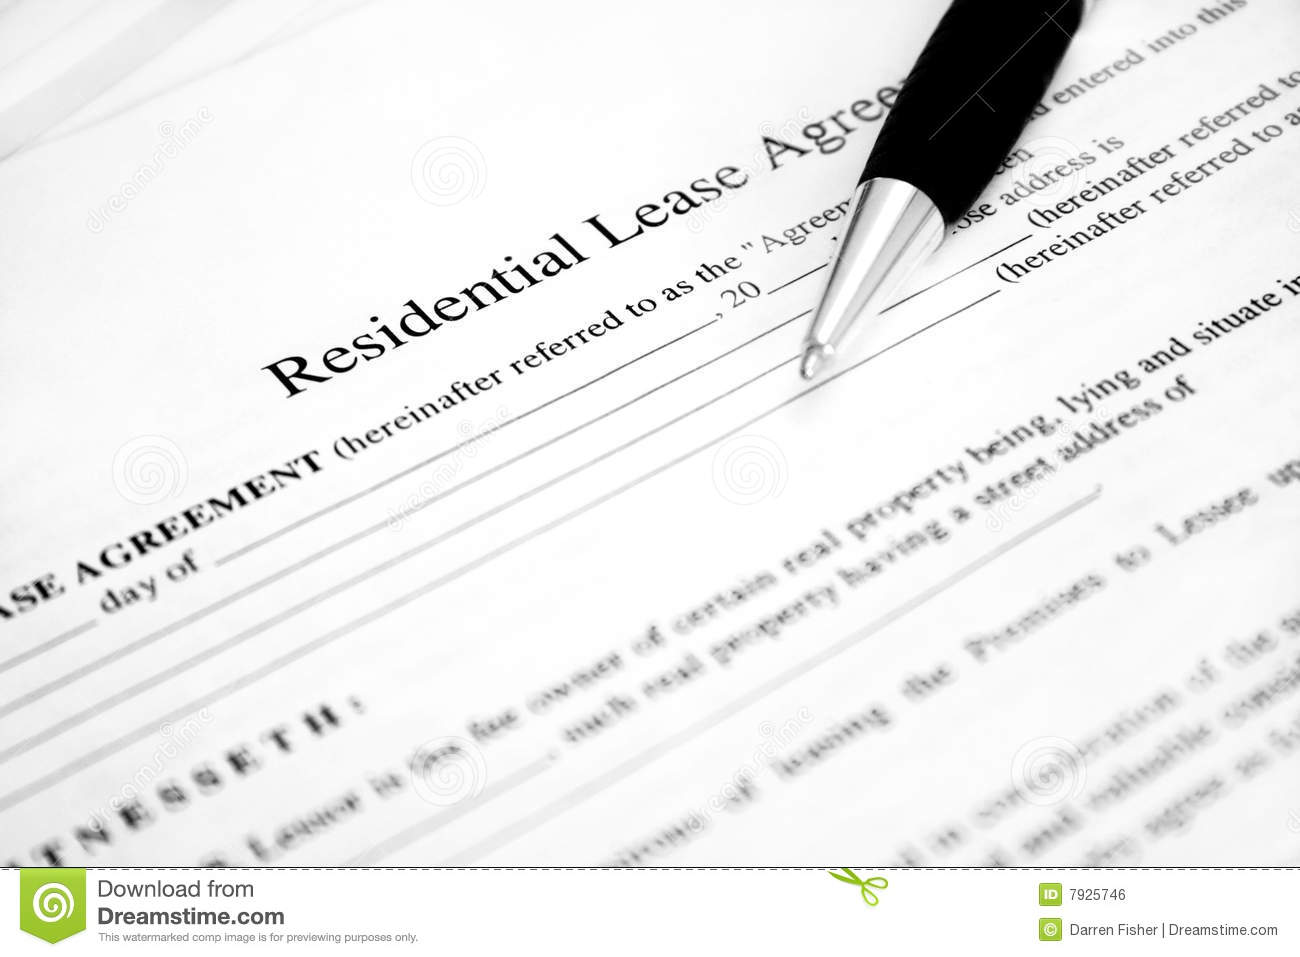 Lease Agreement stock photo. Image of insurance, estate